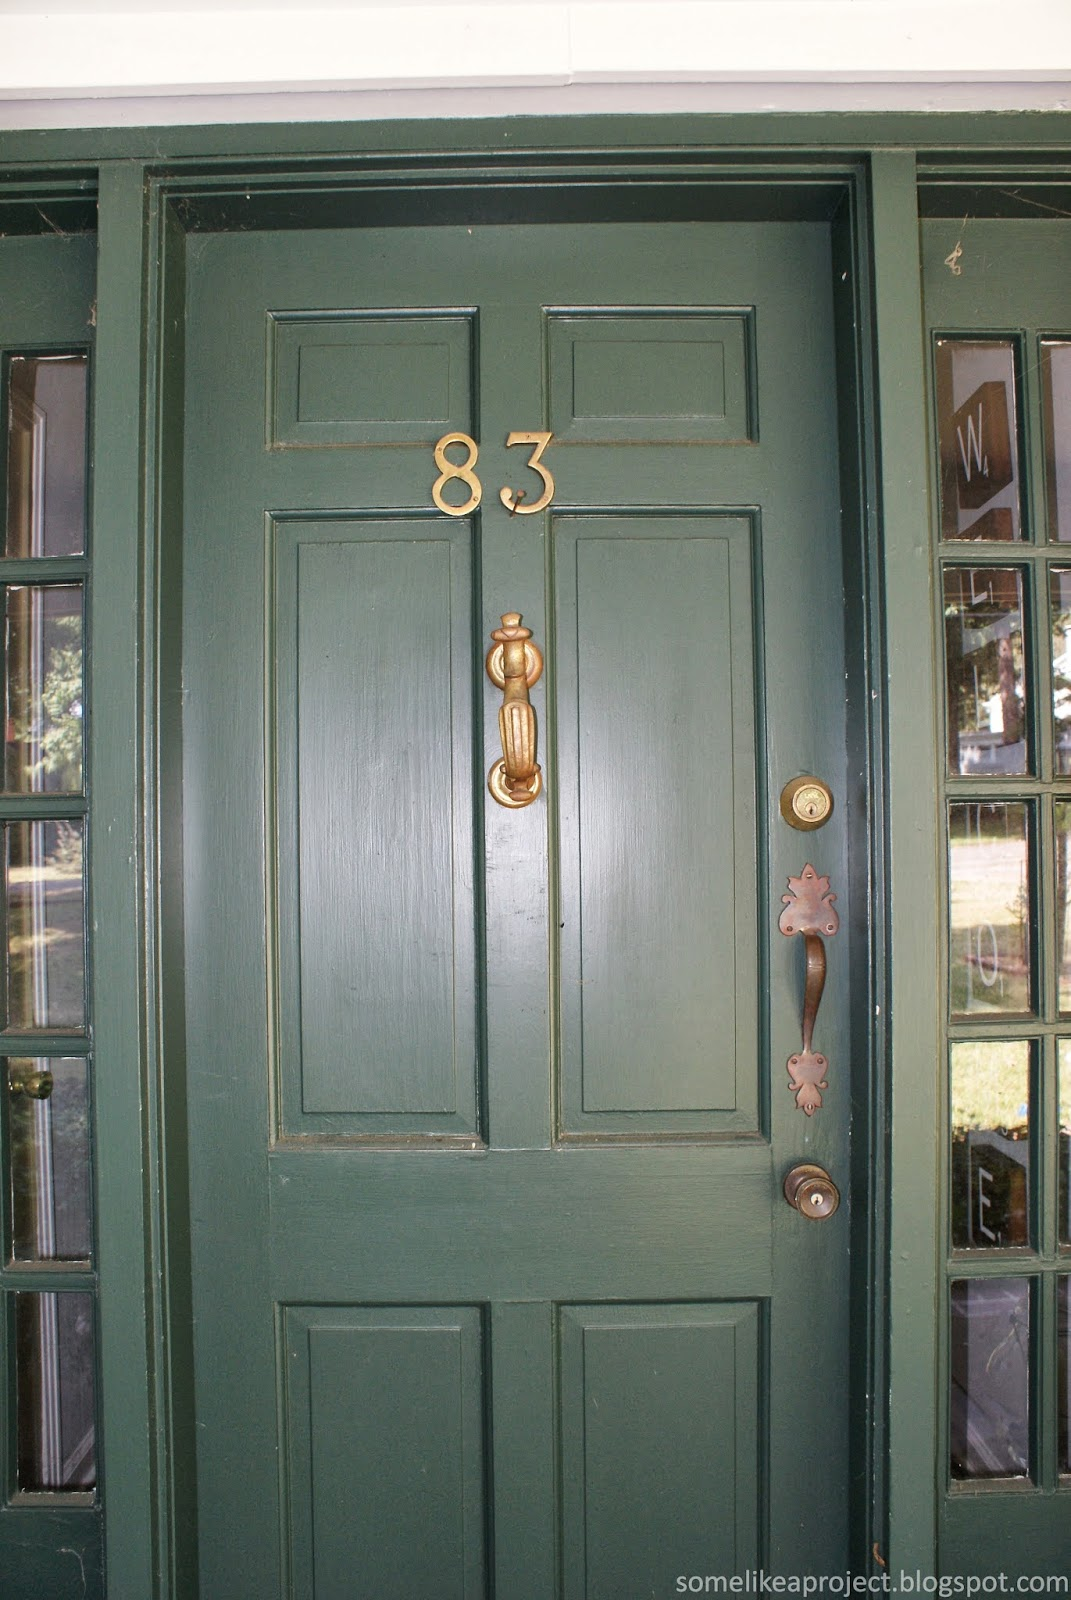 When We Bought The House Numbers Were Mounted On Front Door